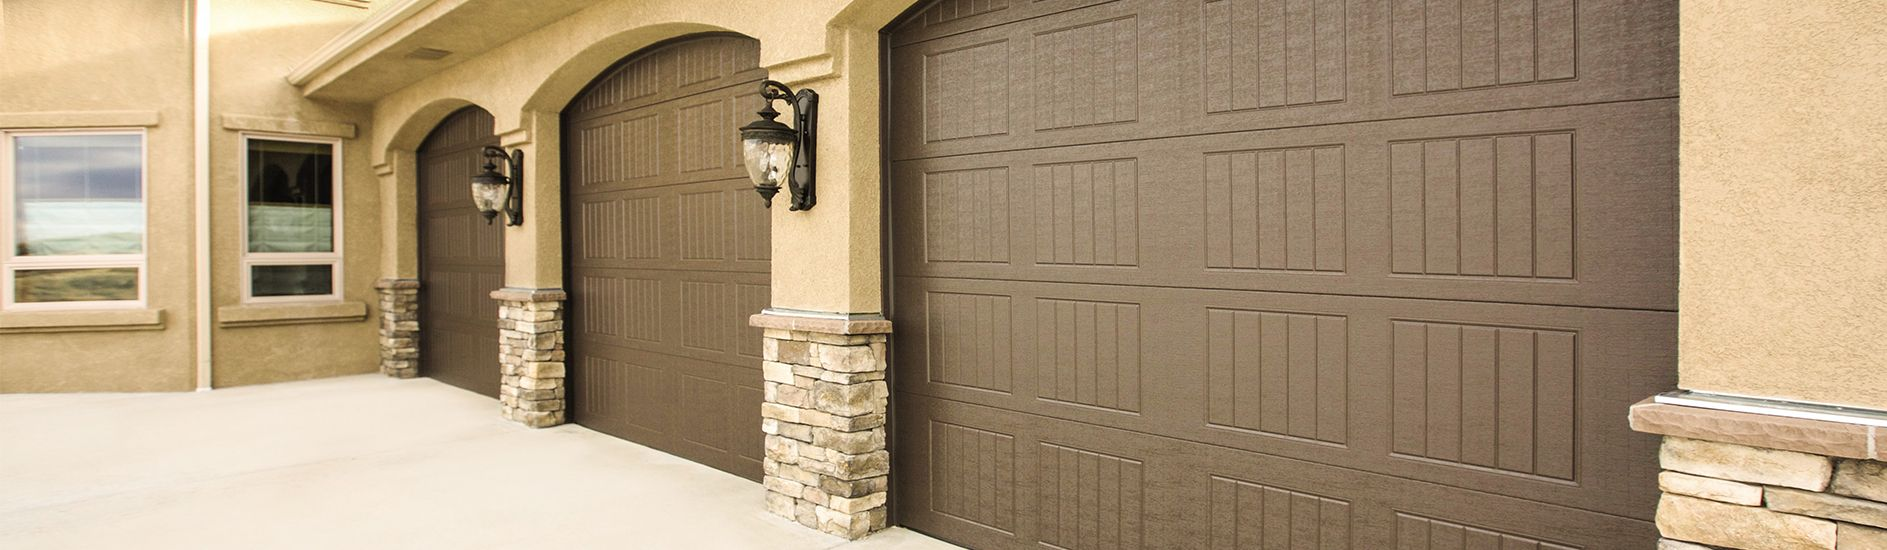 Pin by DIY Garage Door Parts on Garage Doors Pinterest Garage